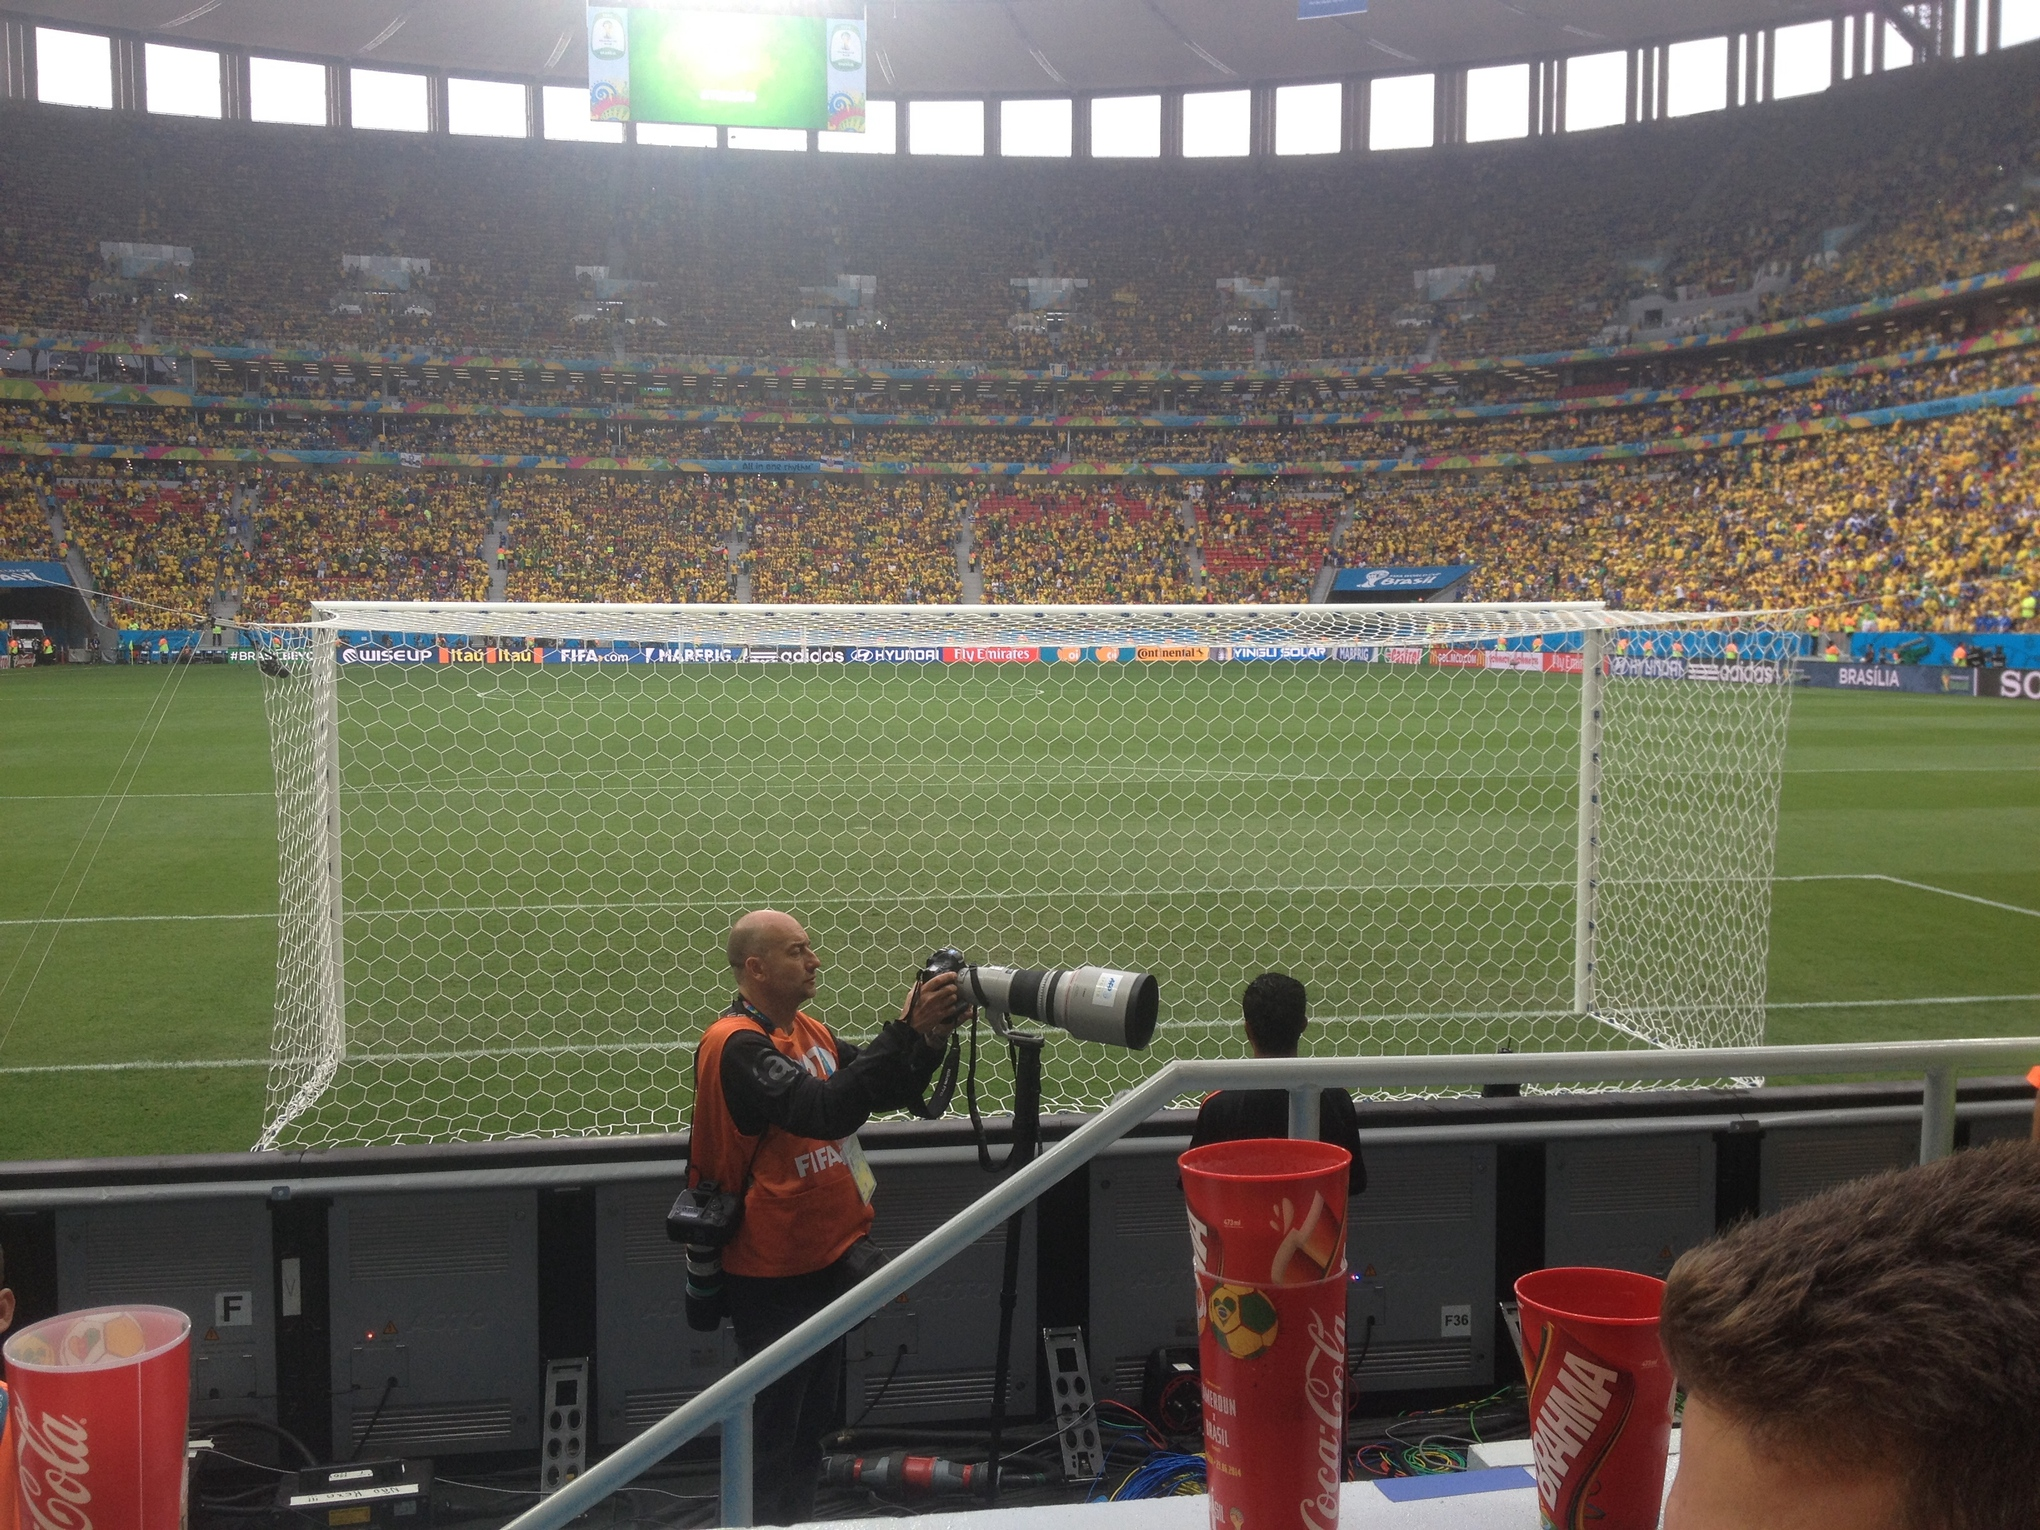 I almost felt bad to have this seat and view as an American surrounded by passionate fans of one of the best soccer nations on Earth.